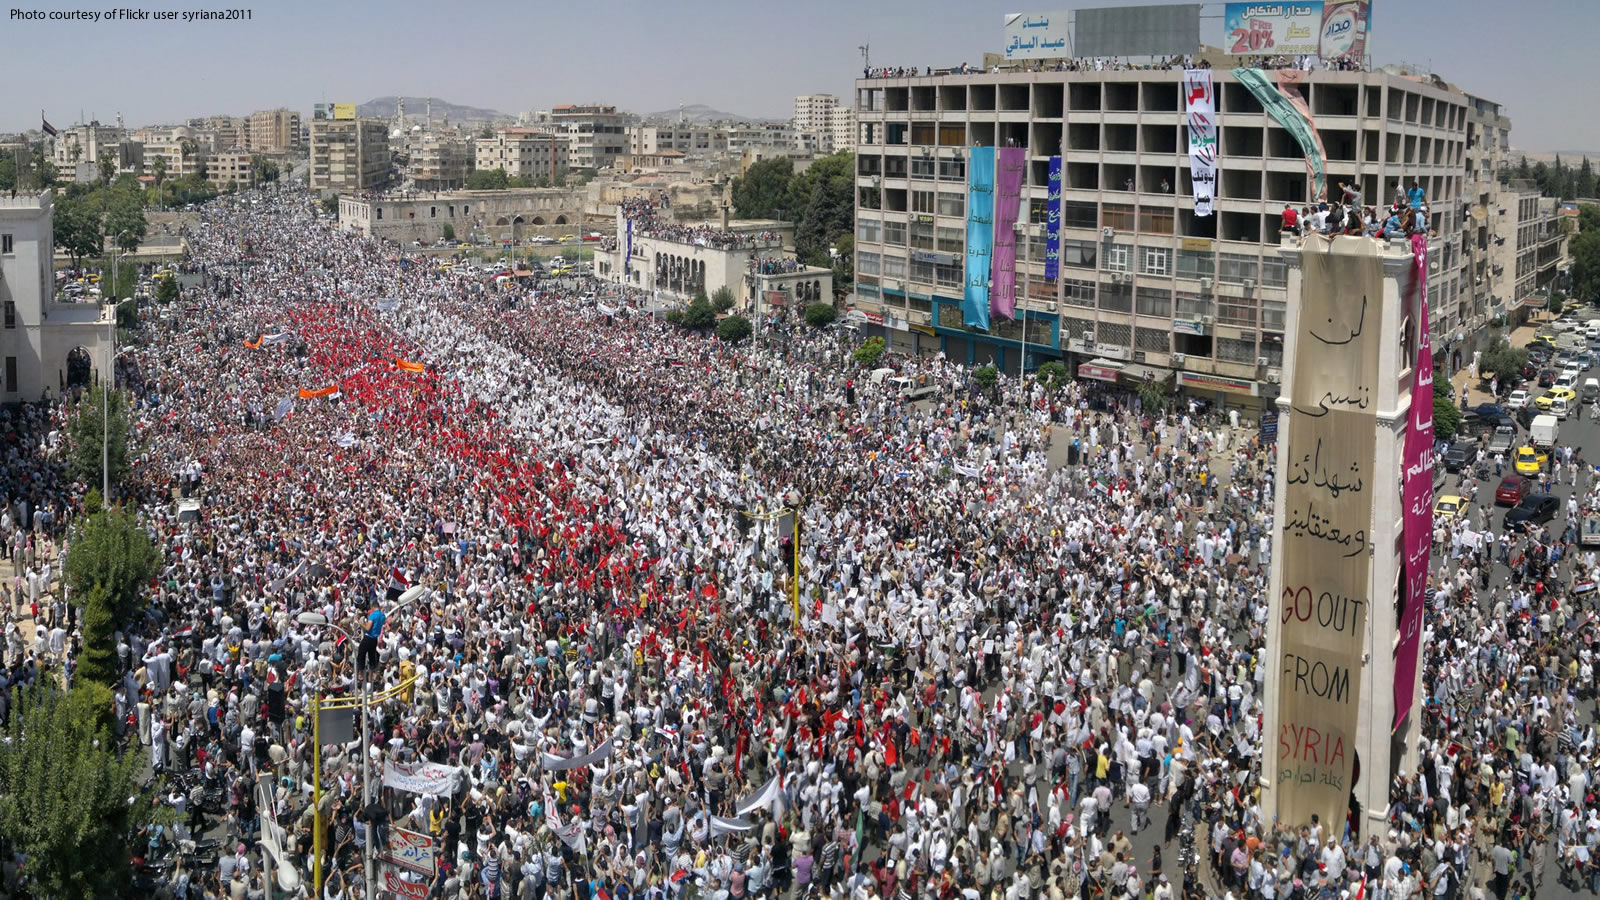 2011 Protest in Al-Assy Square in Hama, Syria